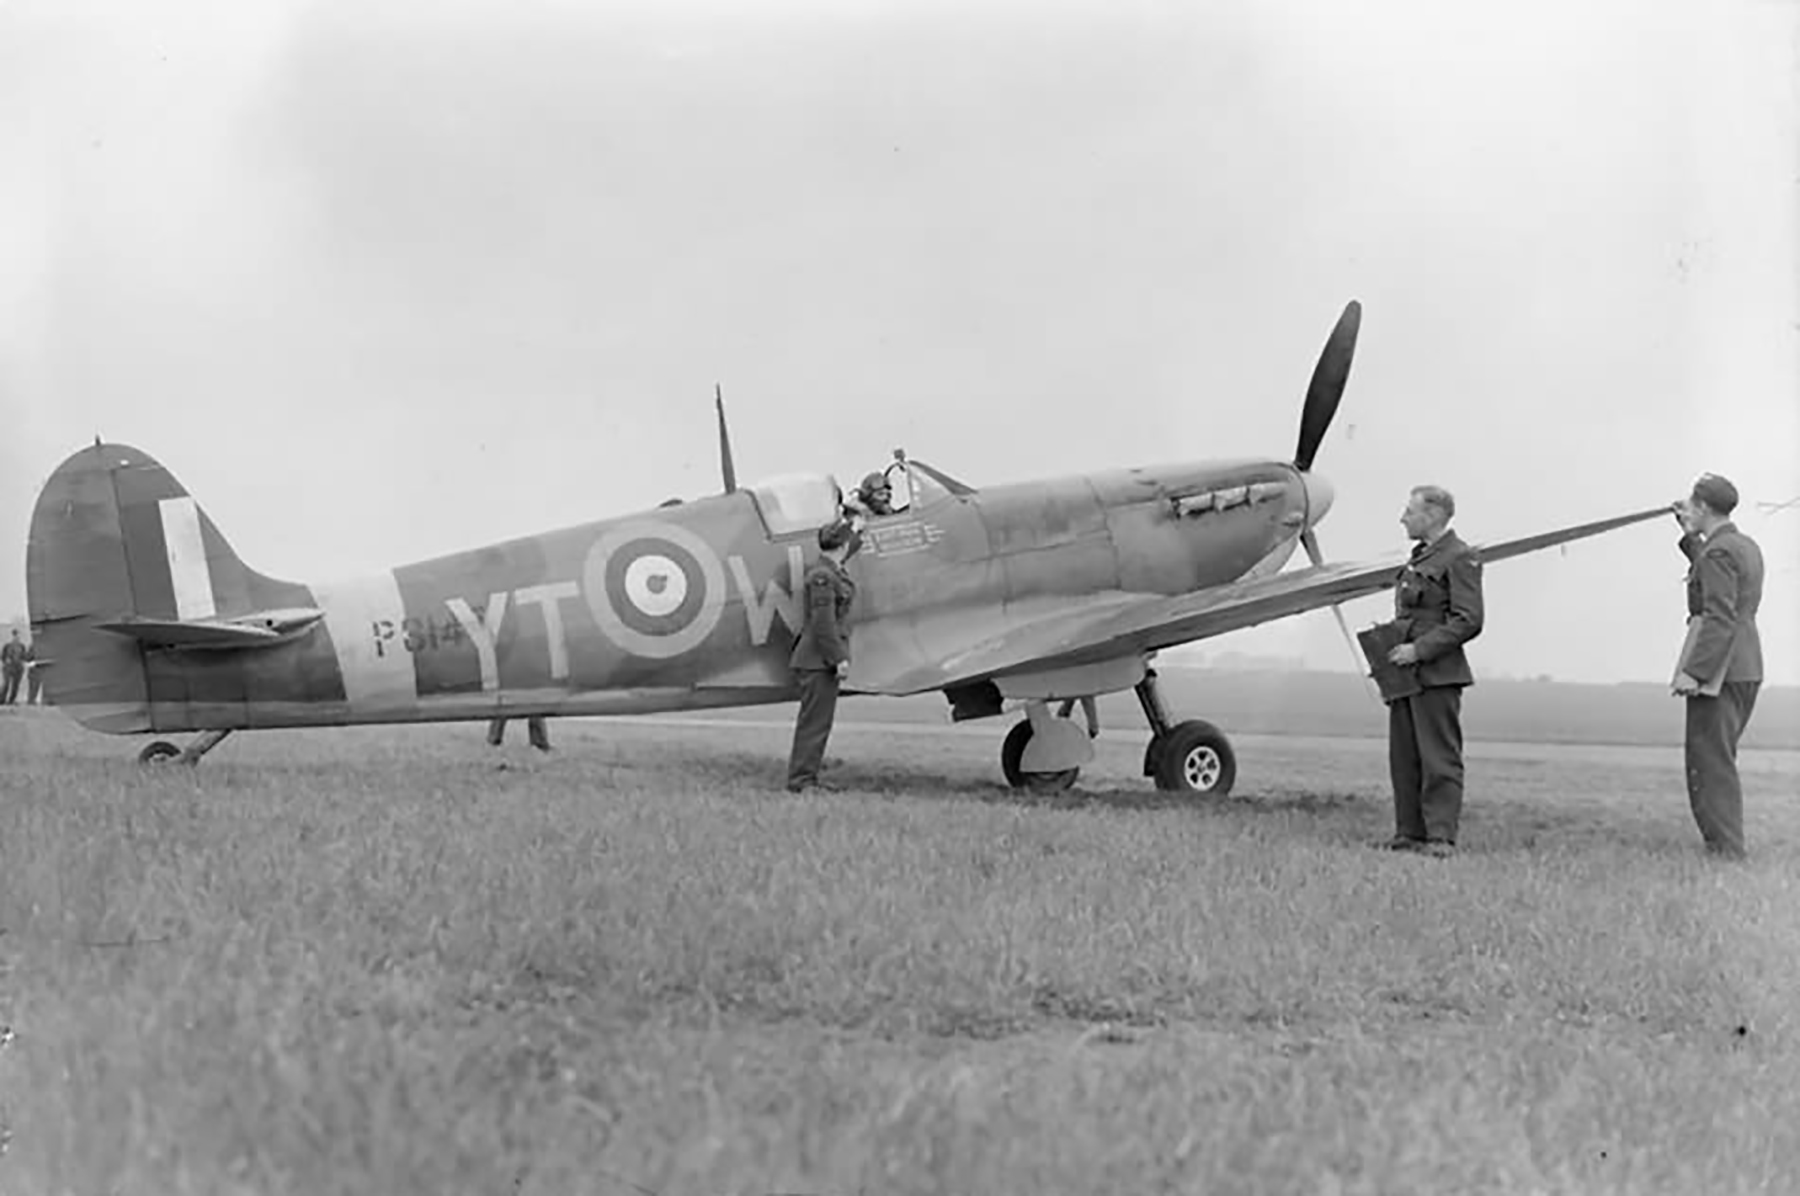 Spitfire MkIIa RAF 65Sqn YTW City of Norwich P8147 at Kirton in Lindsey England 1941 01